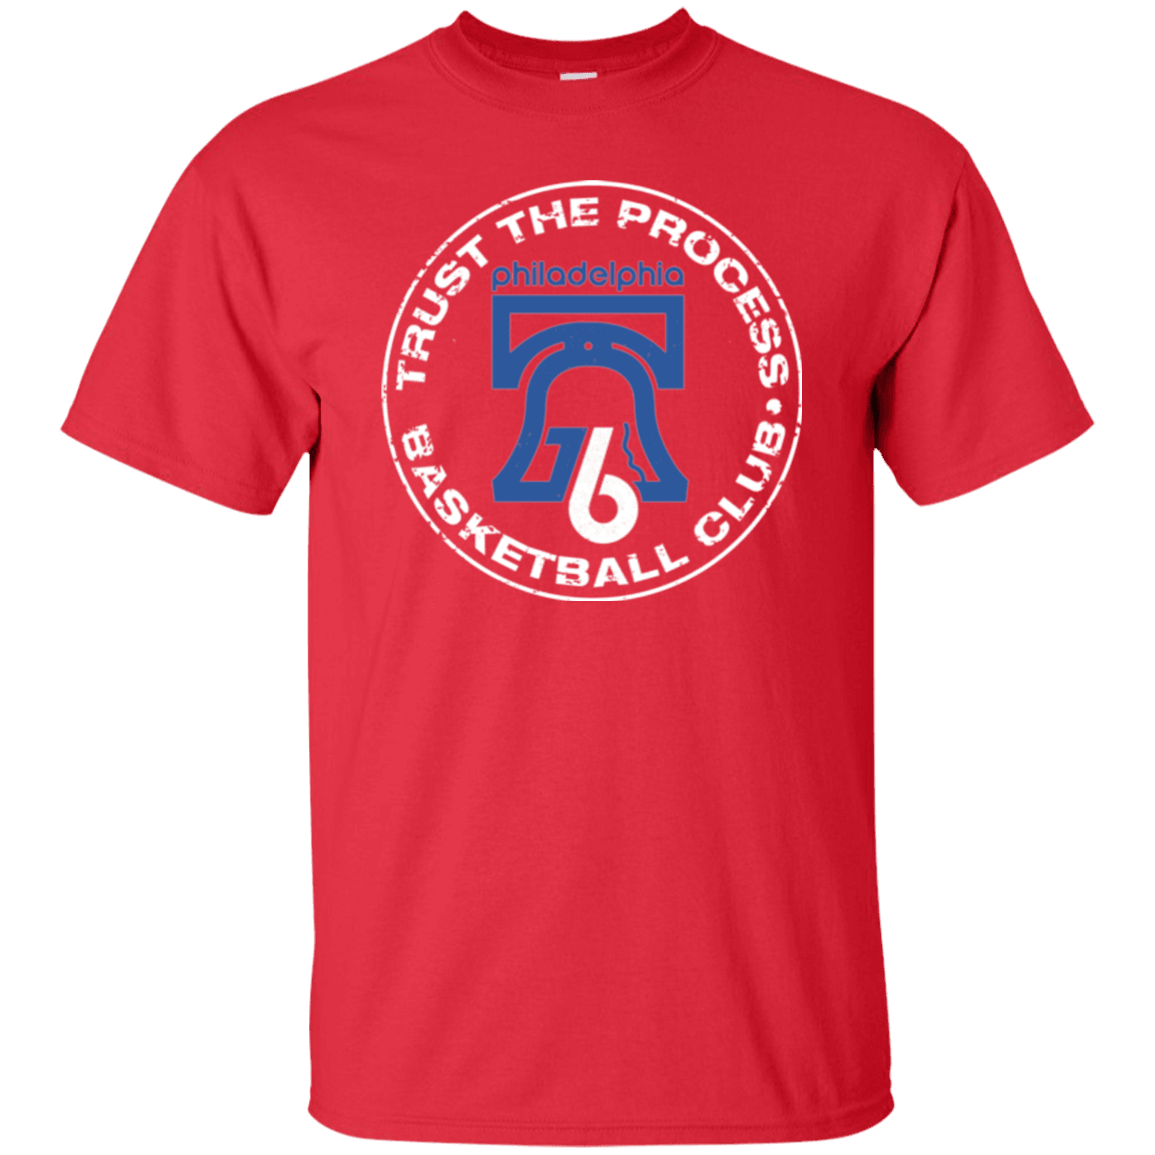 Cyber Special Trust the Process Hoops Club T-Shirt